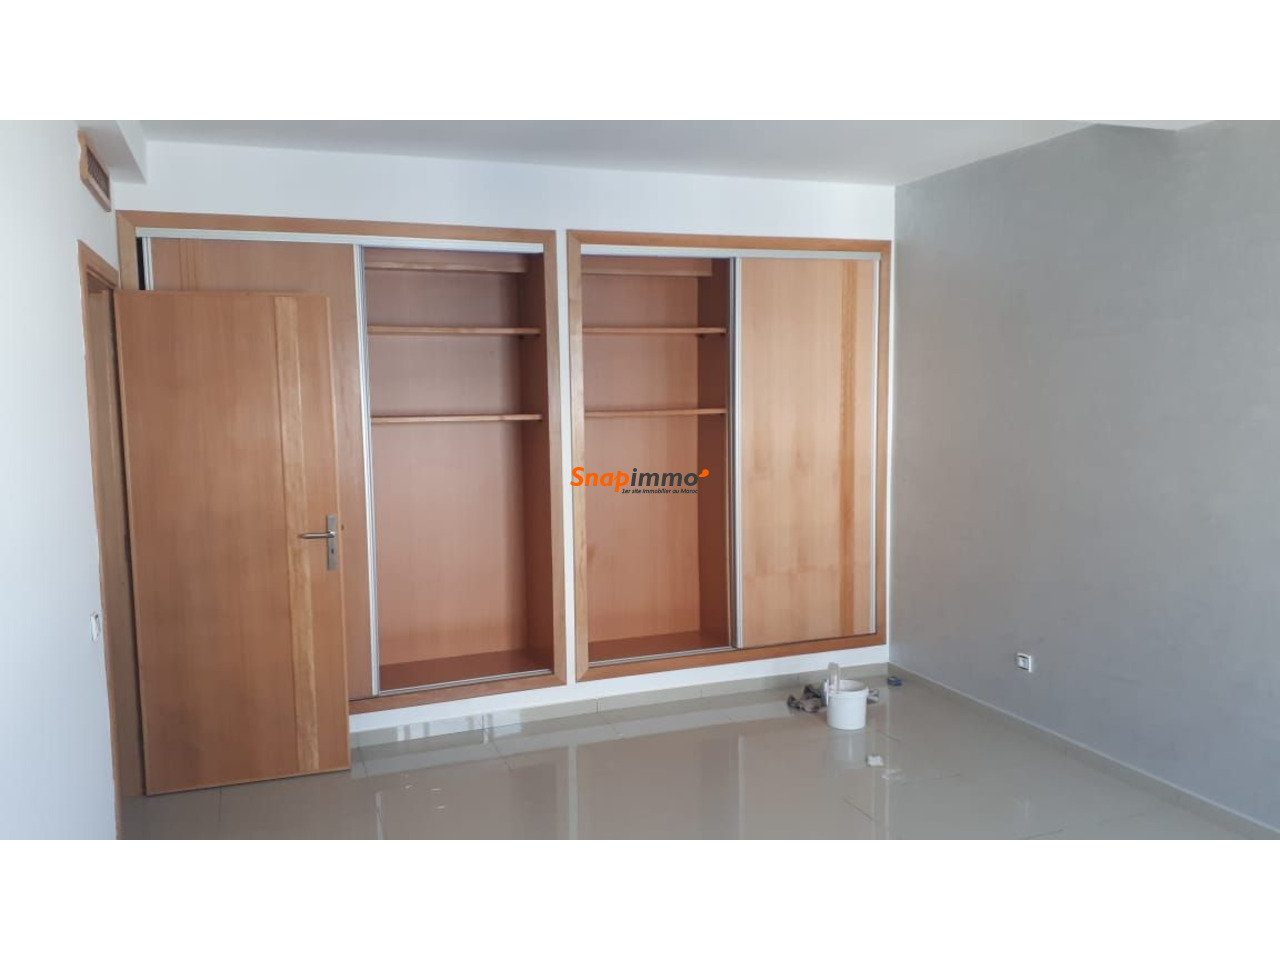 location appartement neuf - 4/6